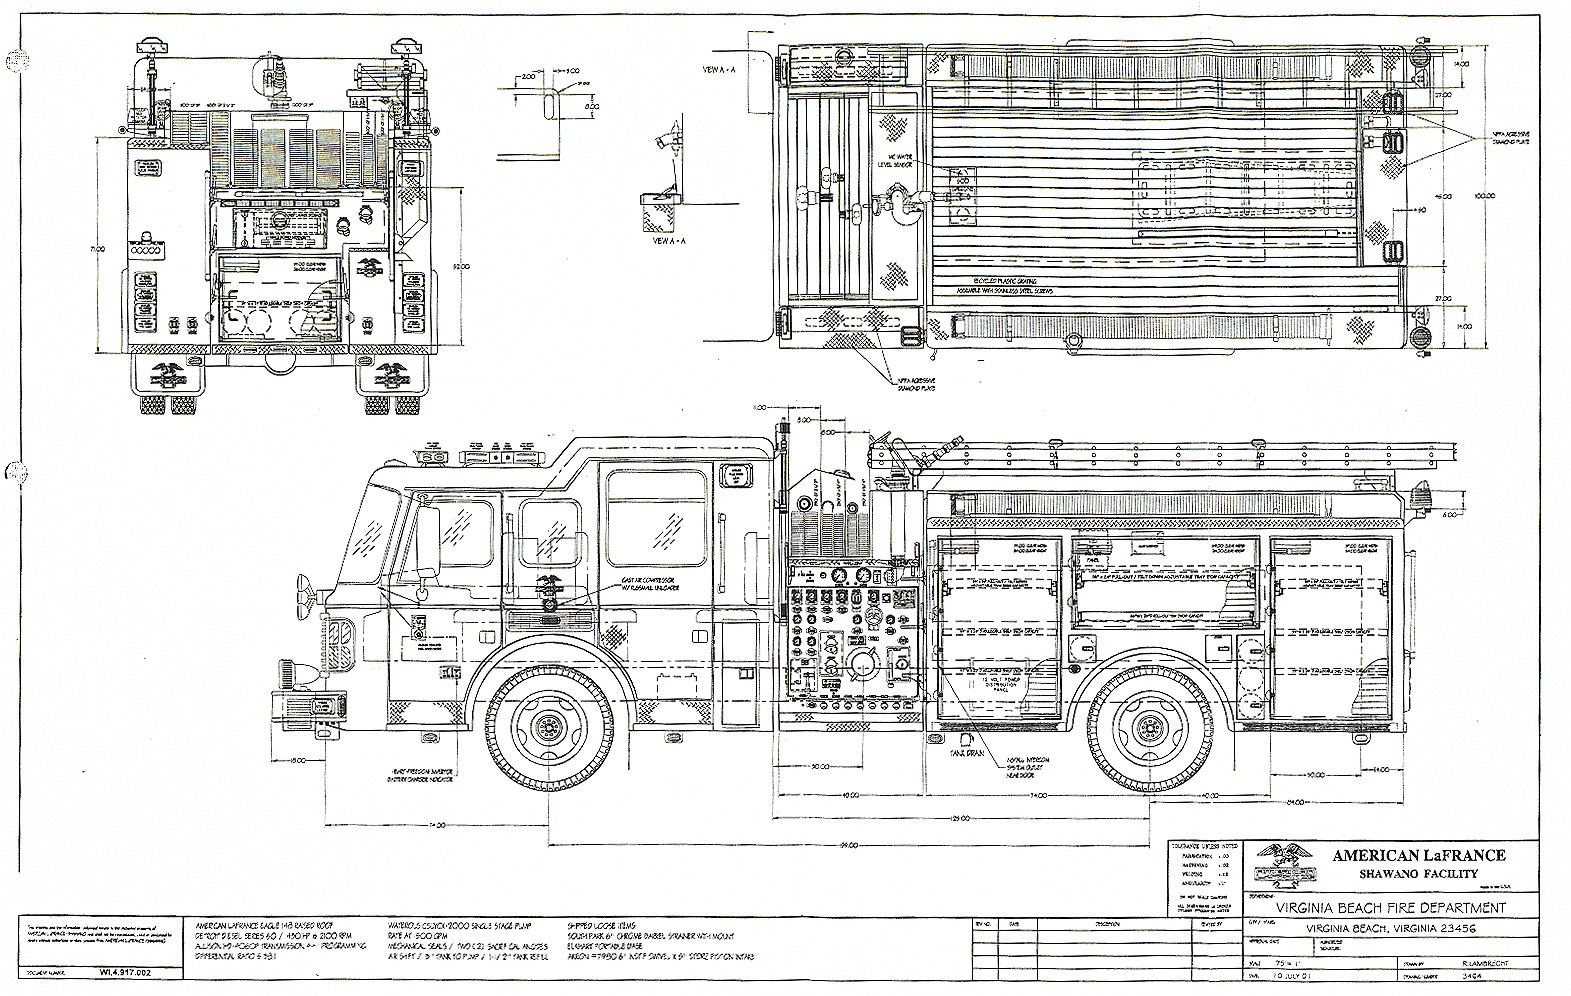 american lafrance eagle pumper blueprint download free blueprint rh drawingdatabase com Fire Truck Pumps Diagram Fire Truck Placement